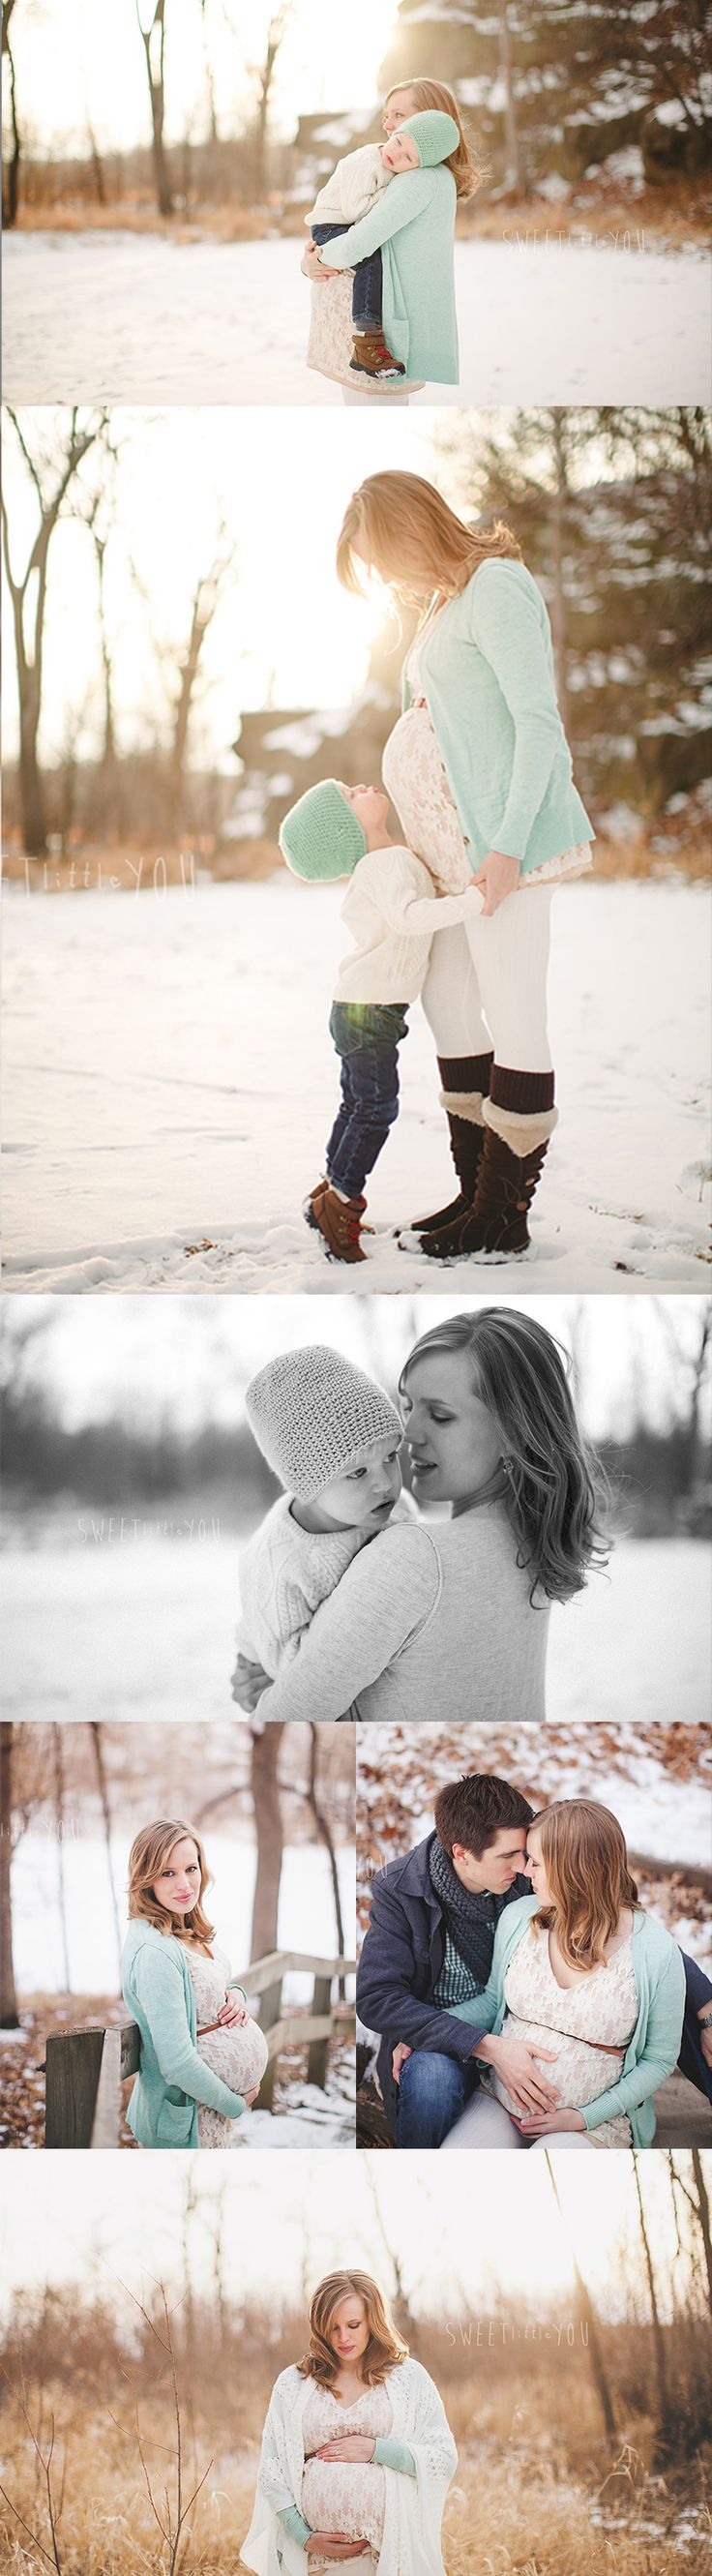 Winter maternity photos. Boots, some color, some pop of the belly sticking out. A beautiful blanket nice too.